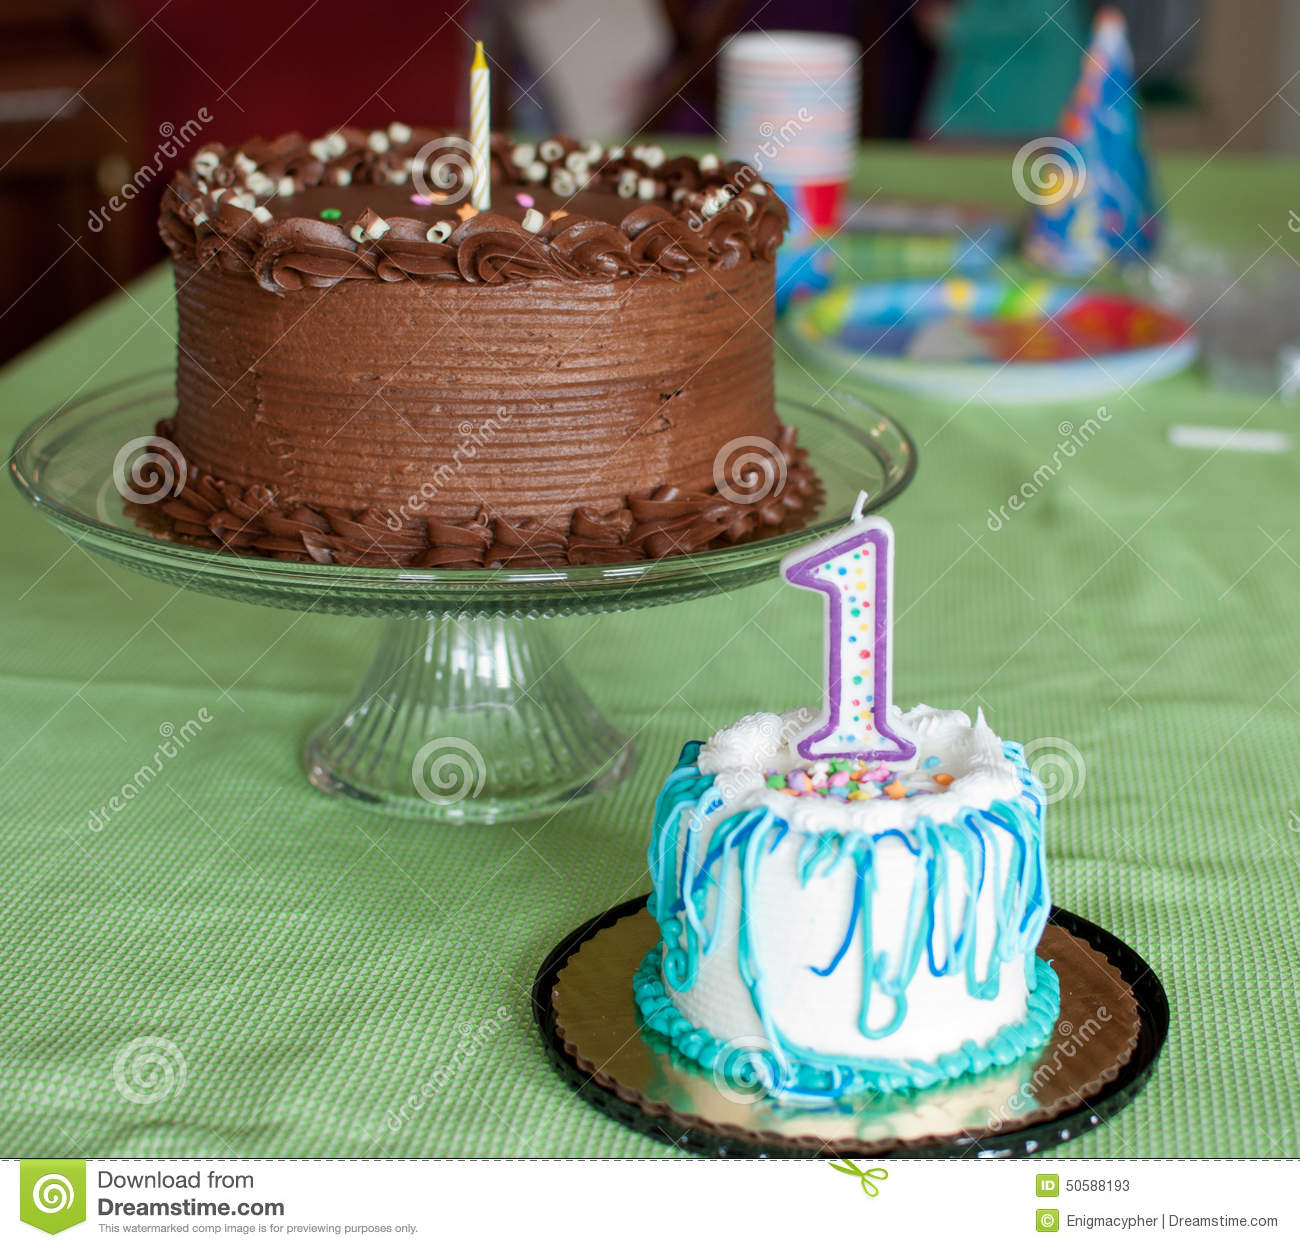 Happy Birthday To A One Year Old Two Cakes Are On Green Tablecloth Cake Is Chocolate With Single Candle The Smaller Smash Has White